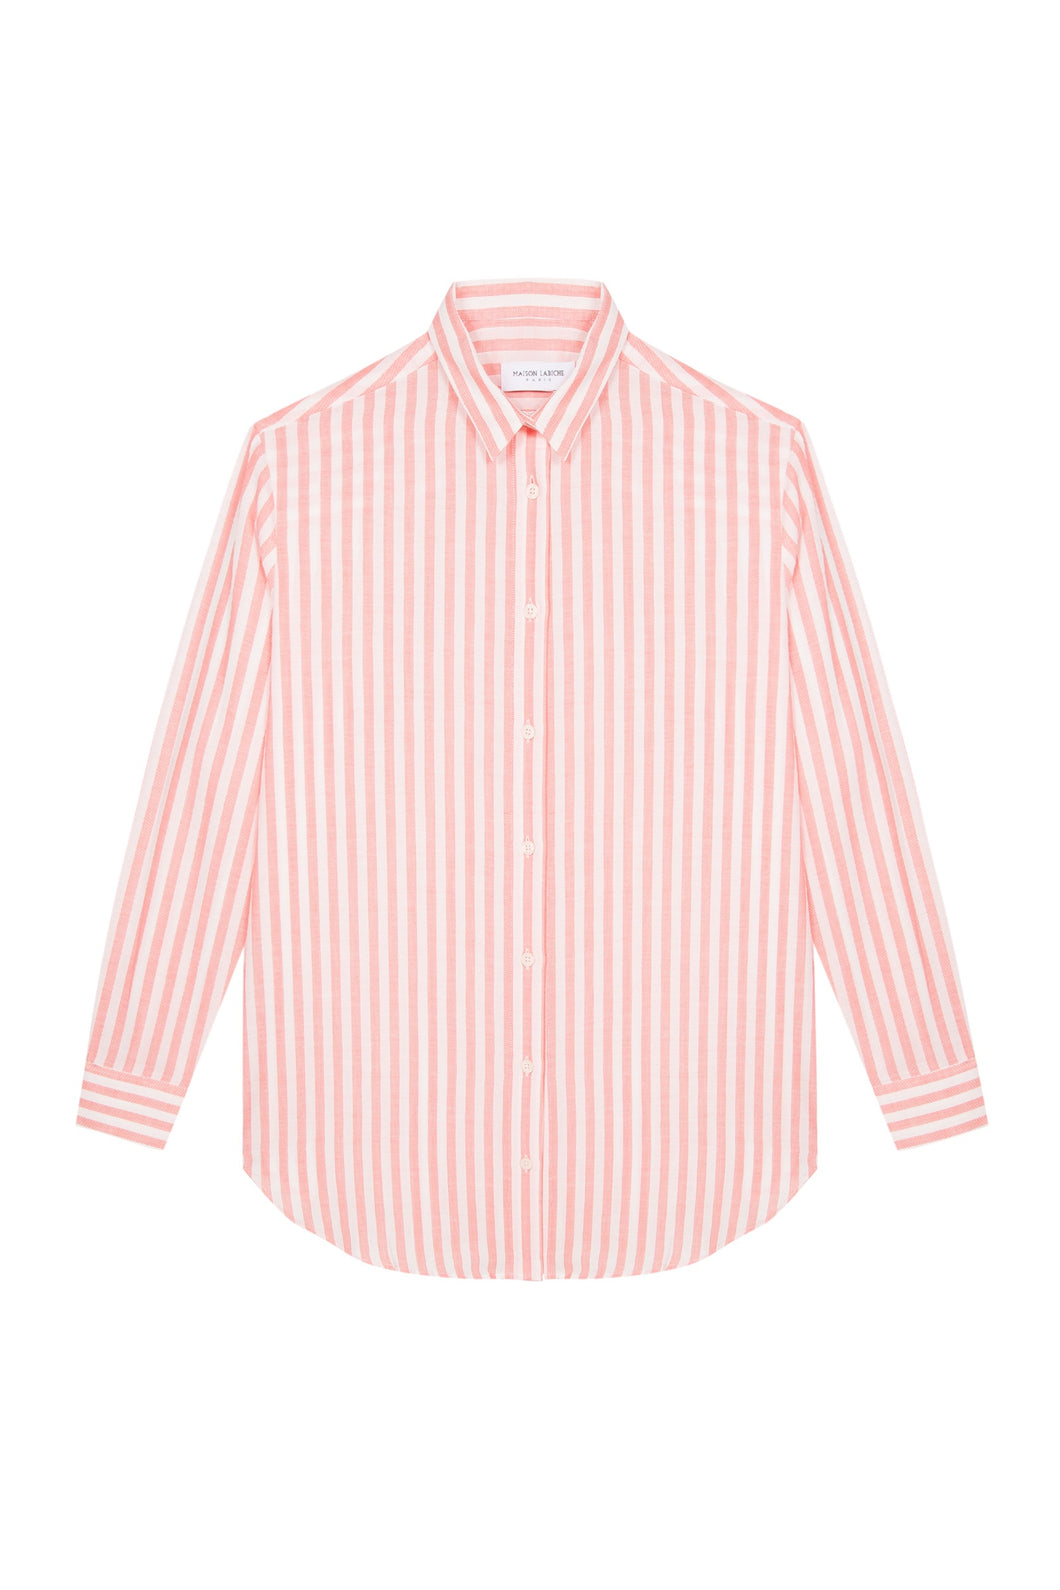 BOYFRIEND SHIRT OFF WHITE CORAL